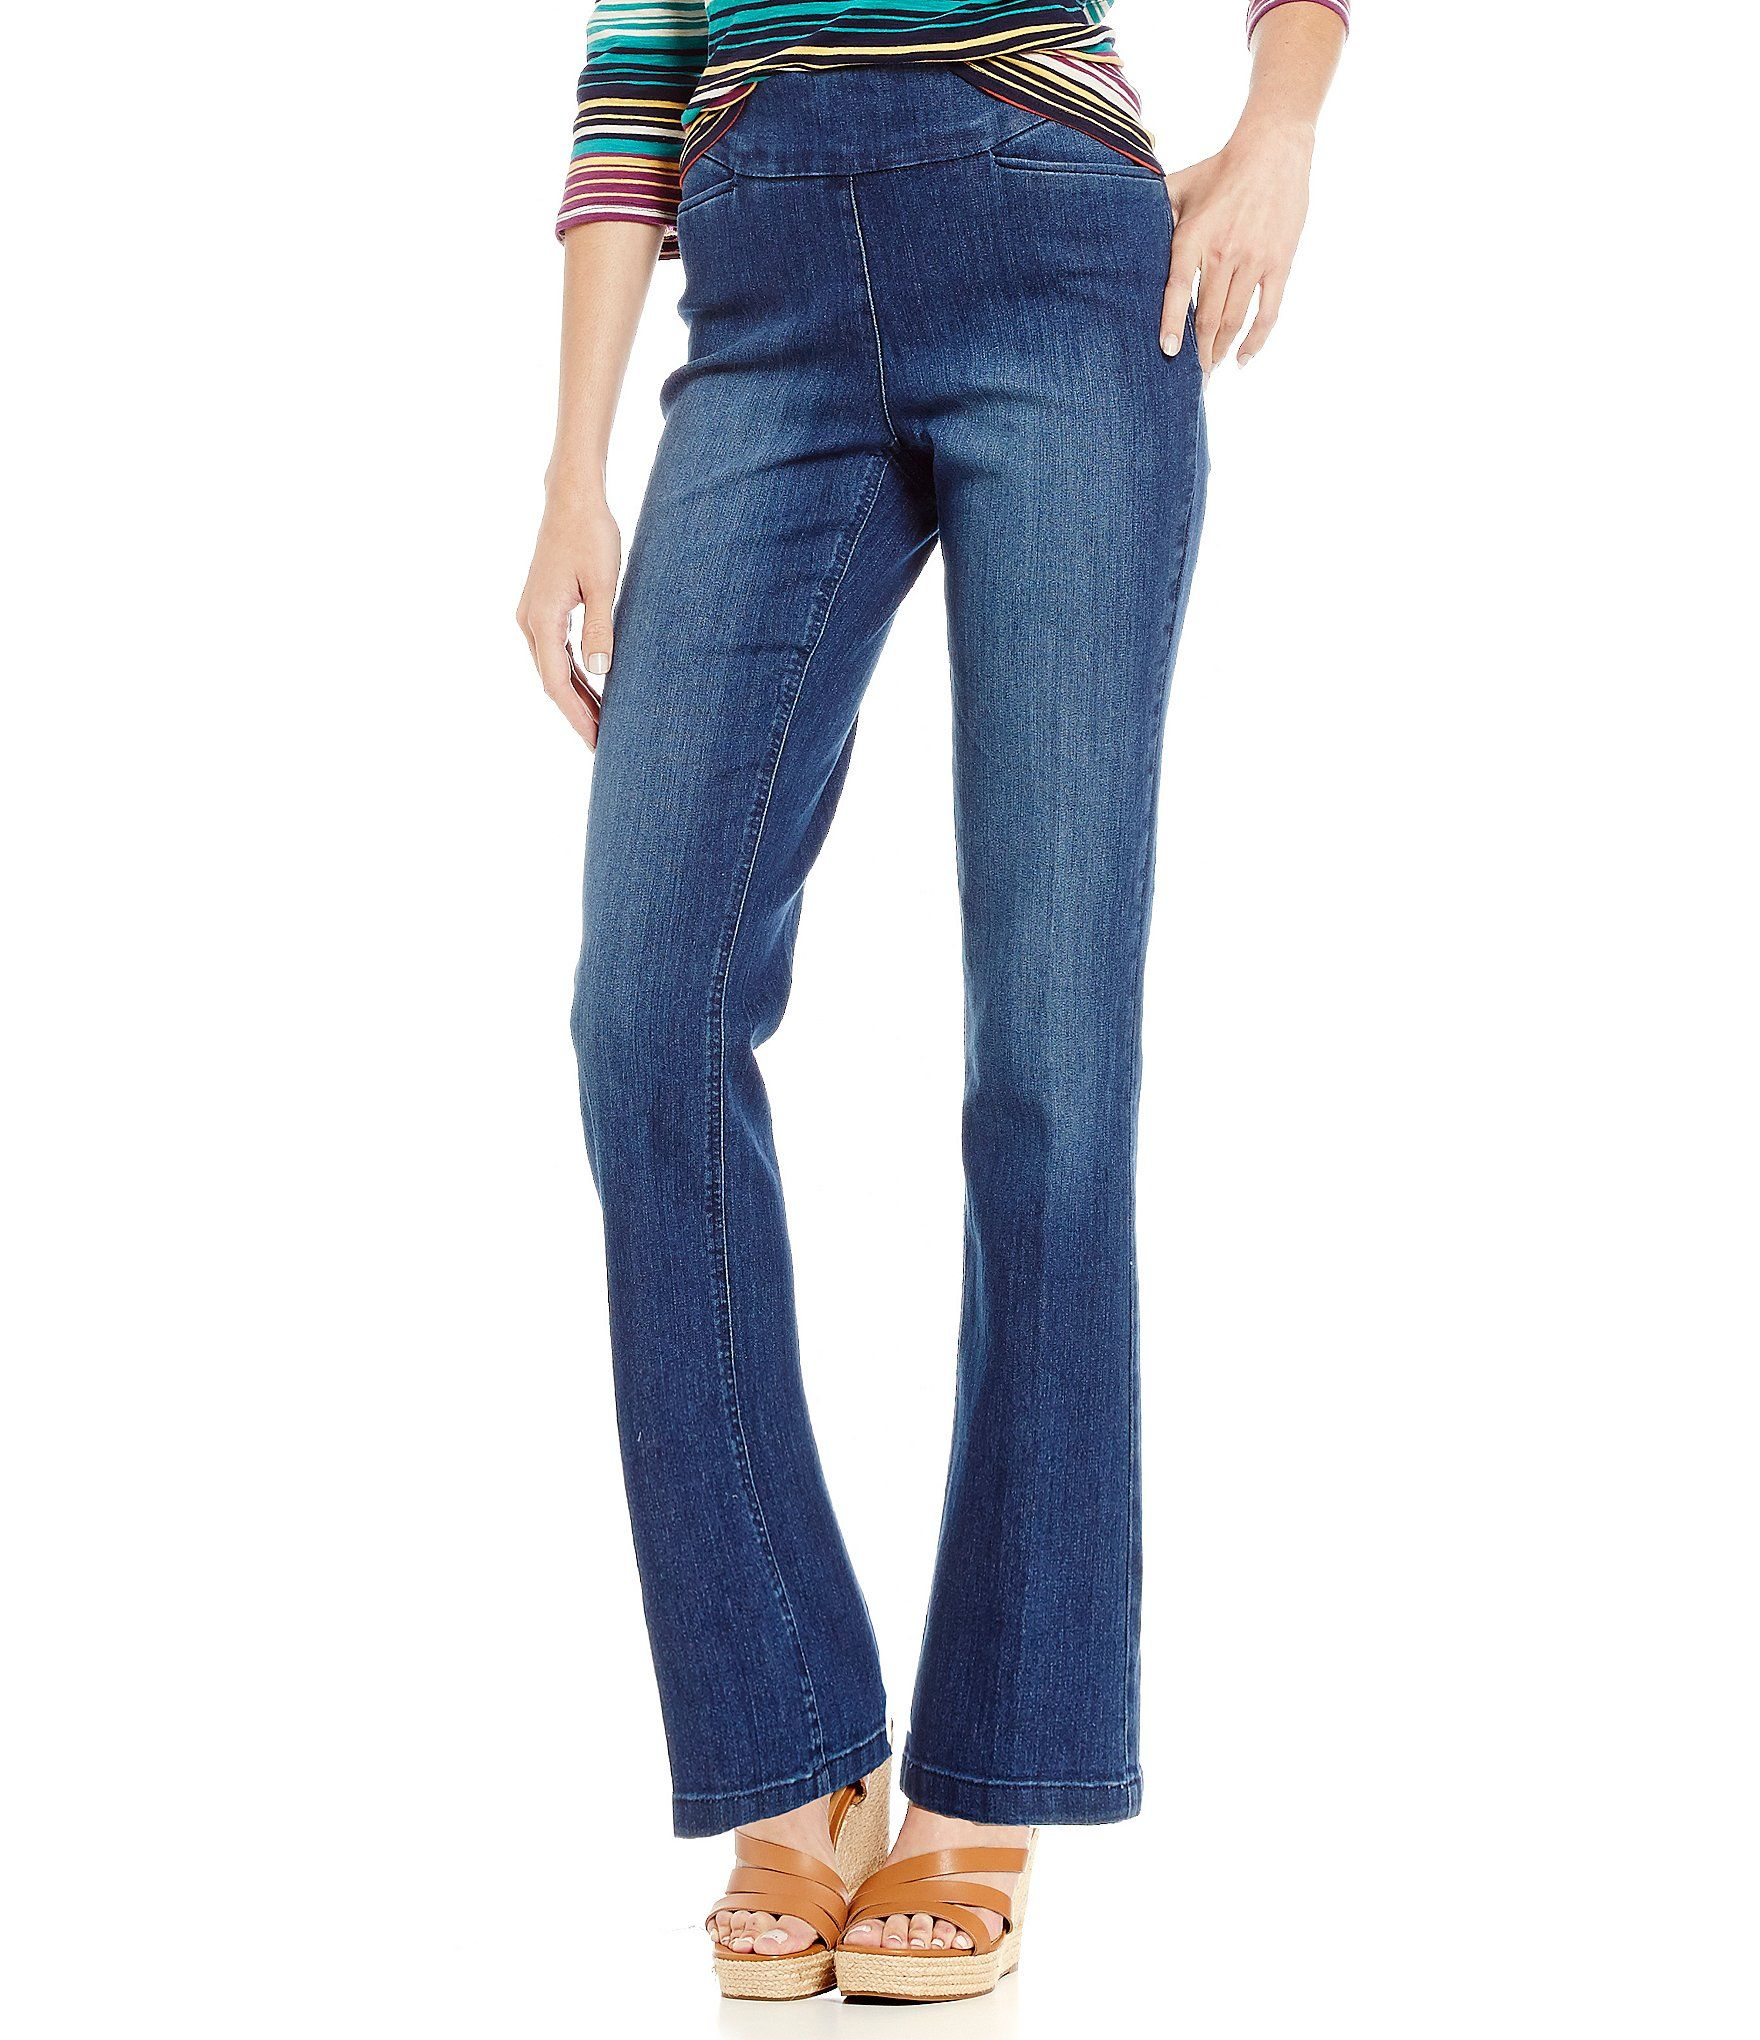 5b56a66170e96 Westbound the PARK AVE fit Denim Bootcut Pants in 2019